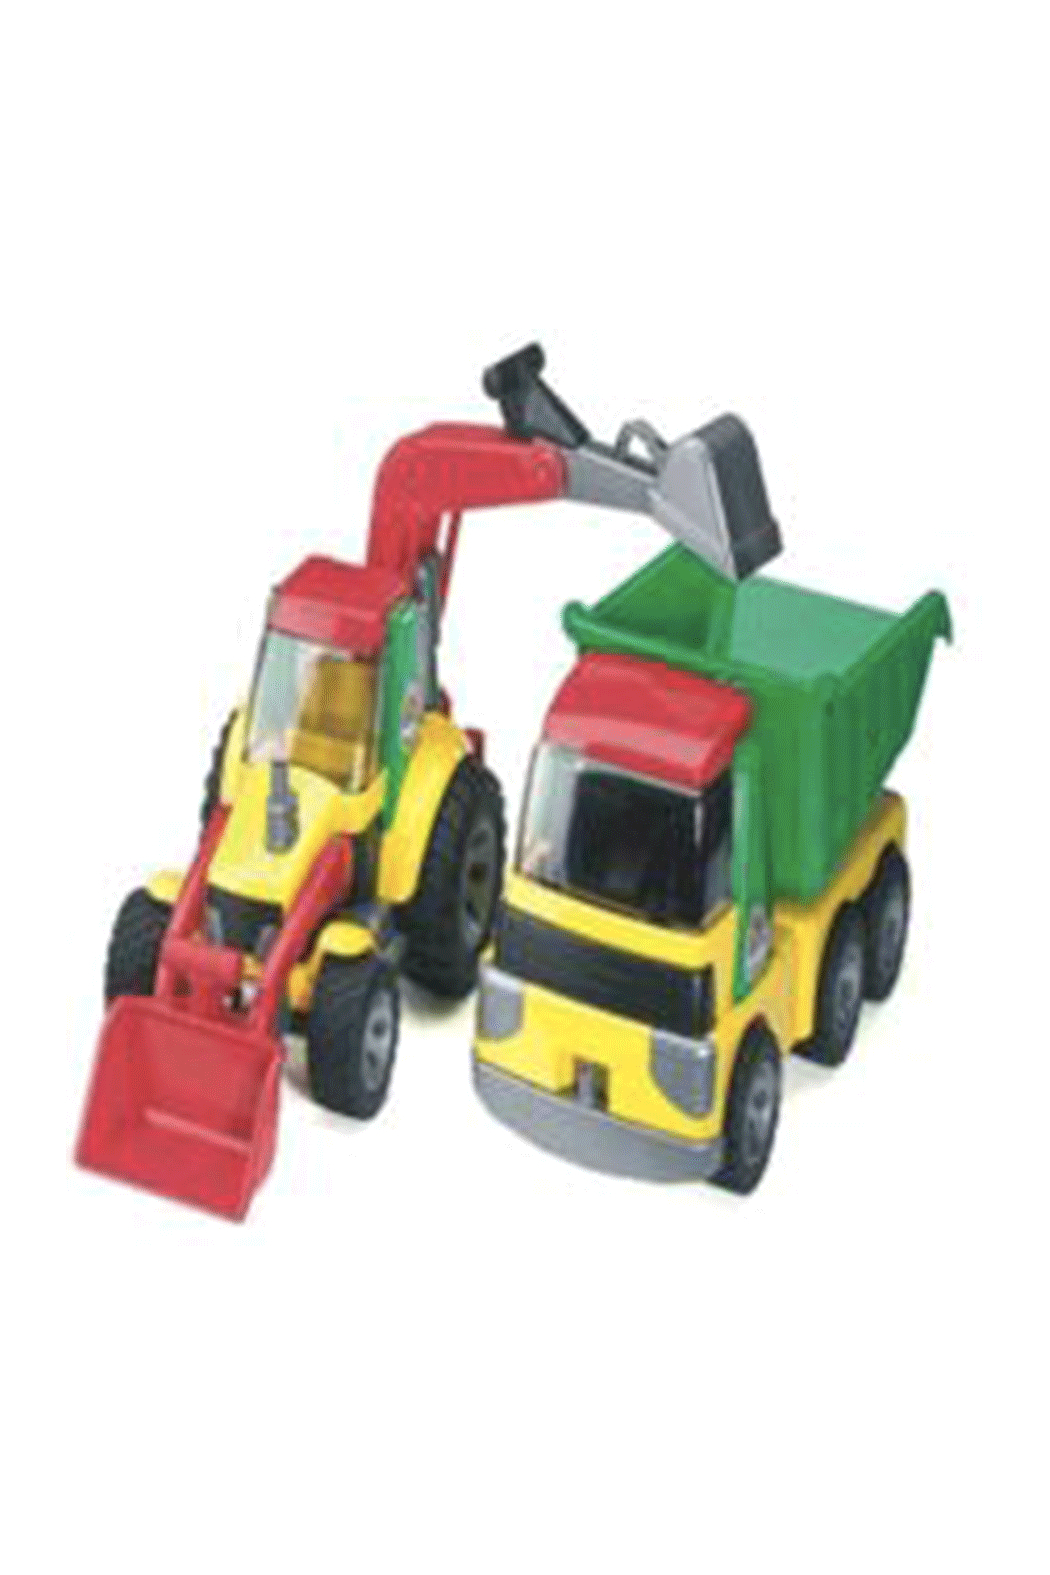 Bruder Roadmax Backhoe Loader - Main Image